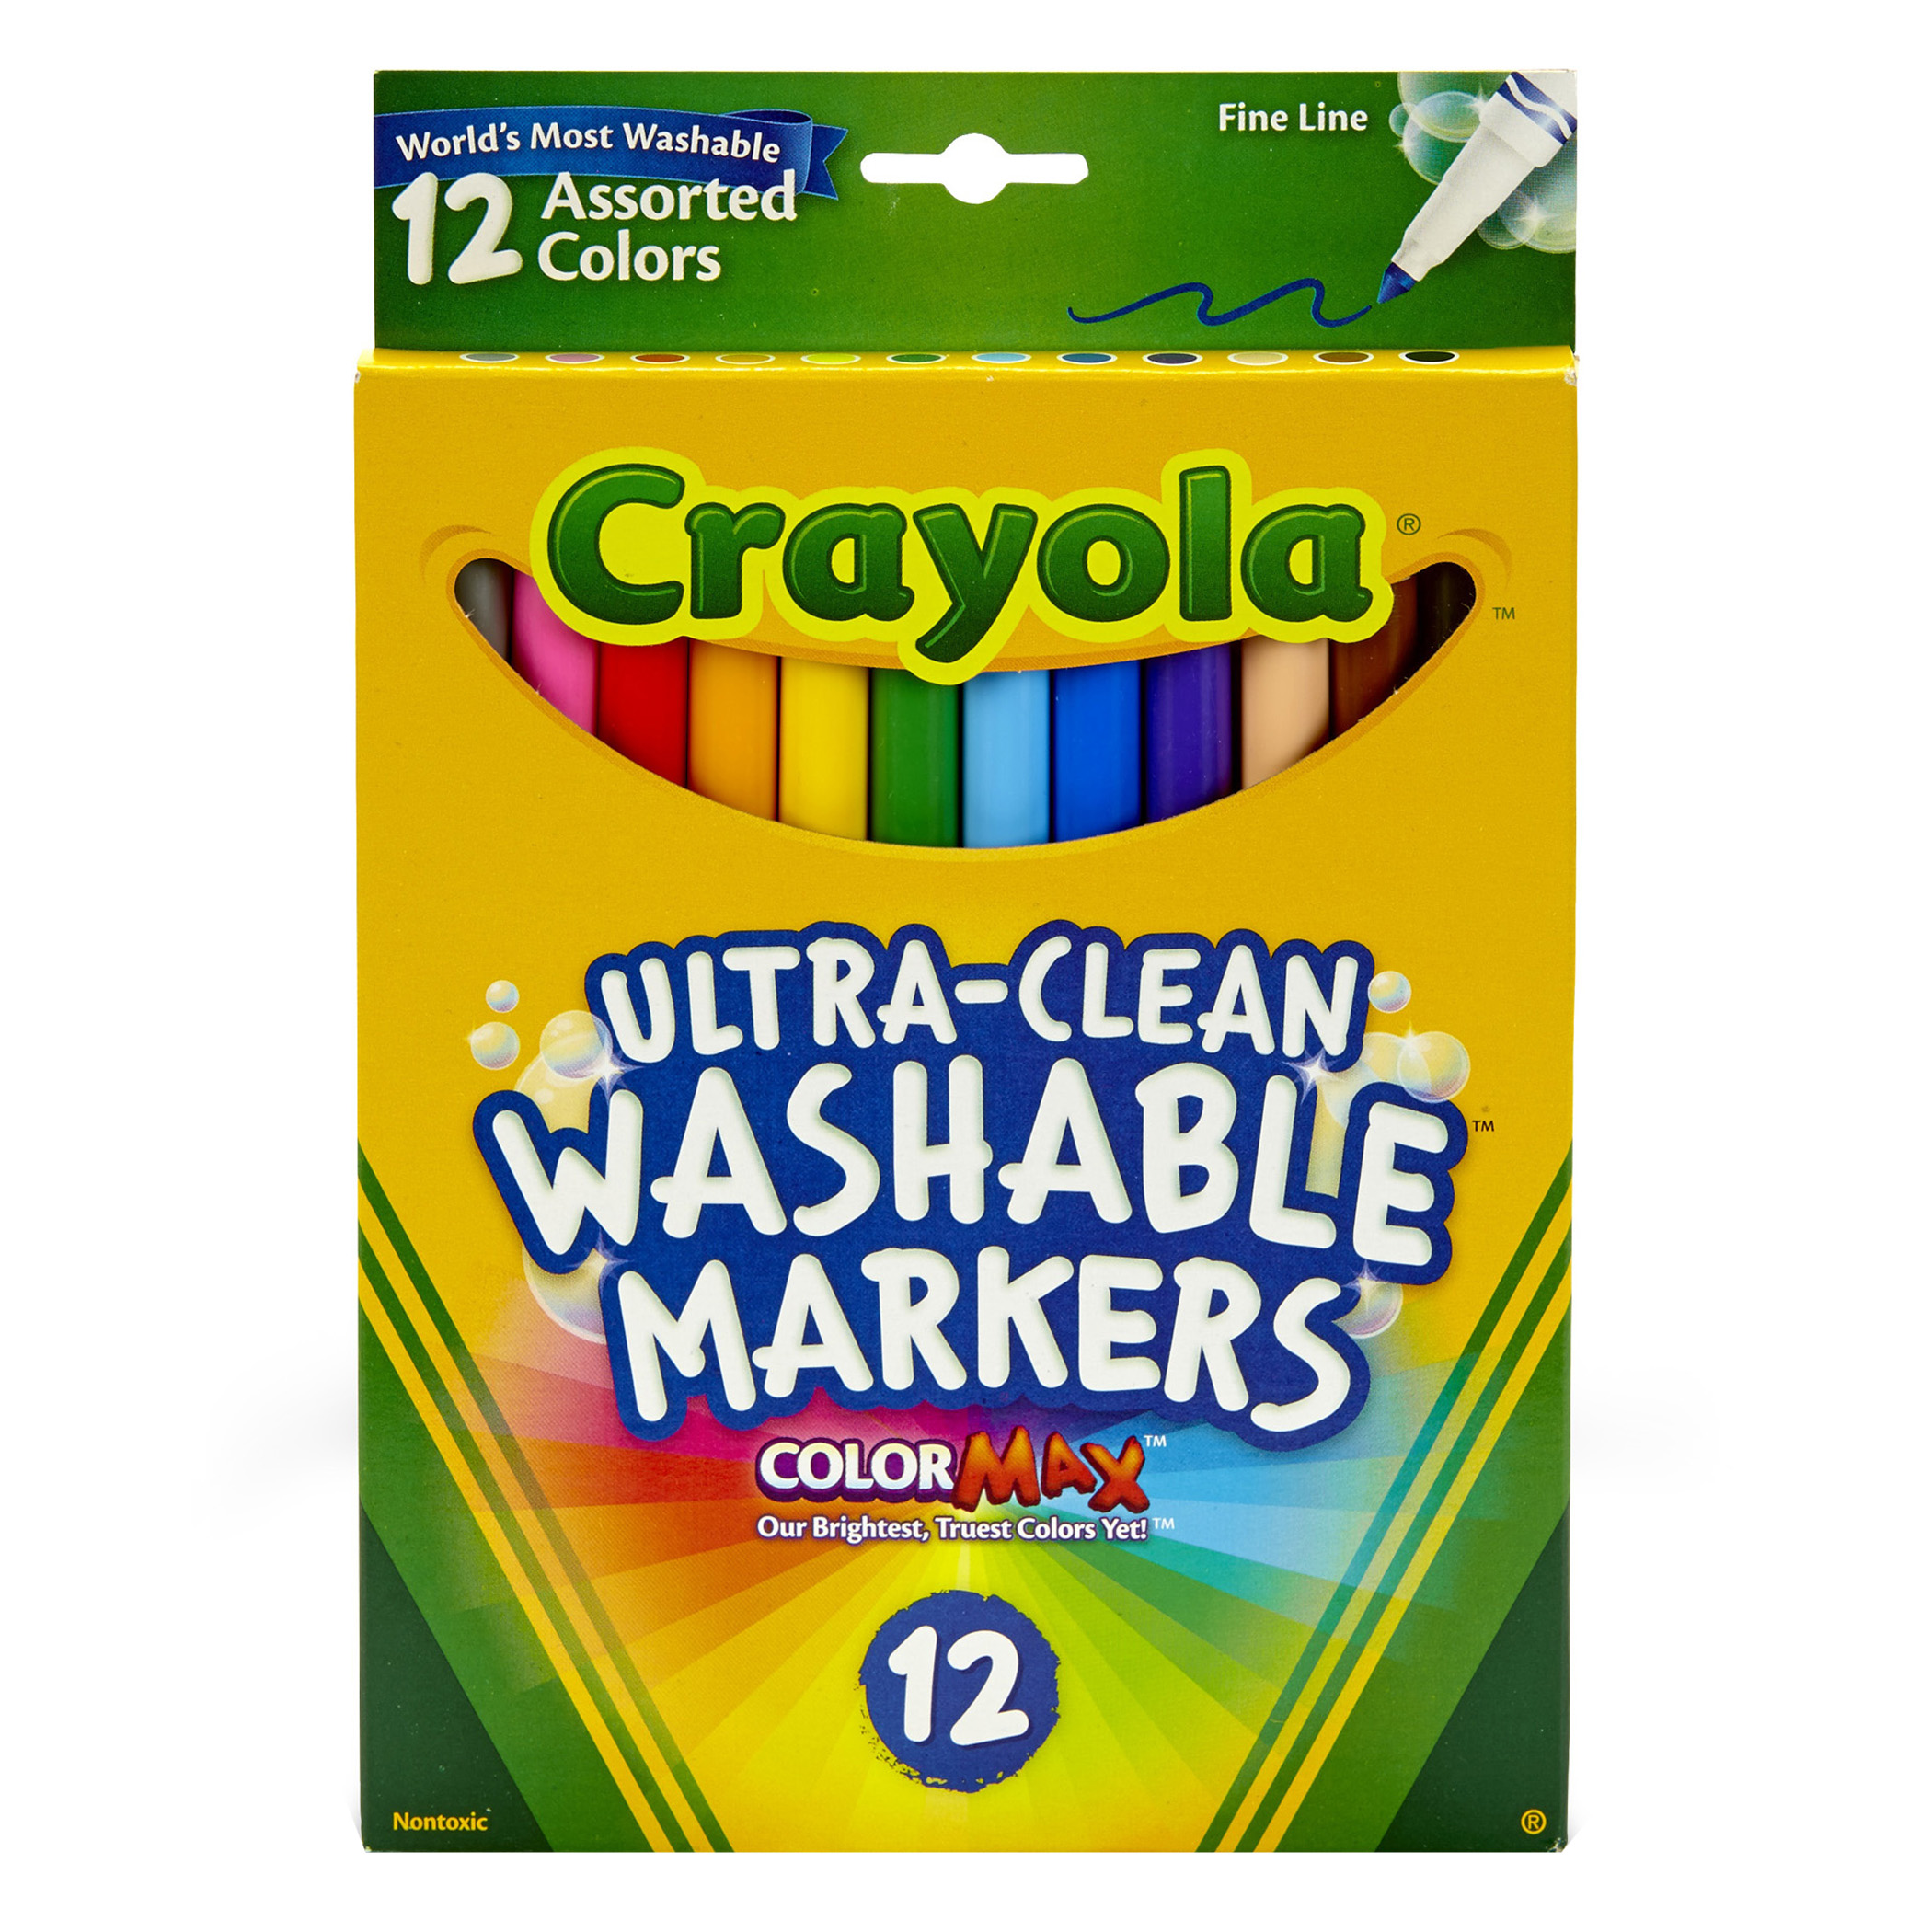 Crayola Fine Line Washable Markers 12 Count Per Box, Set Of 3 Boxes